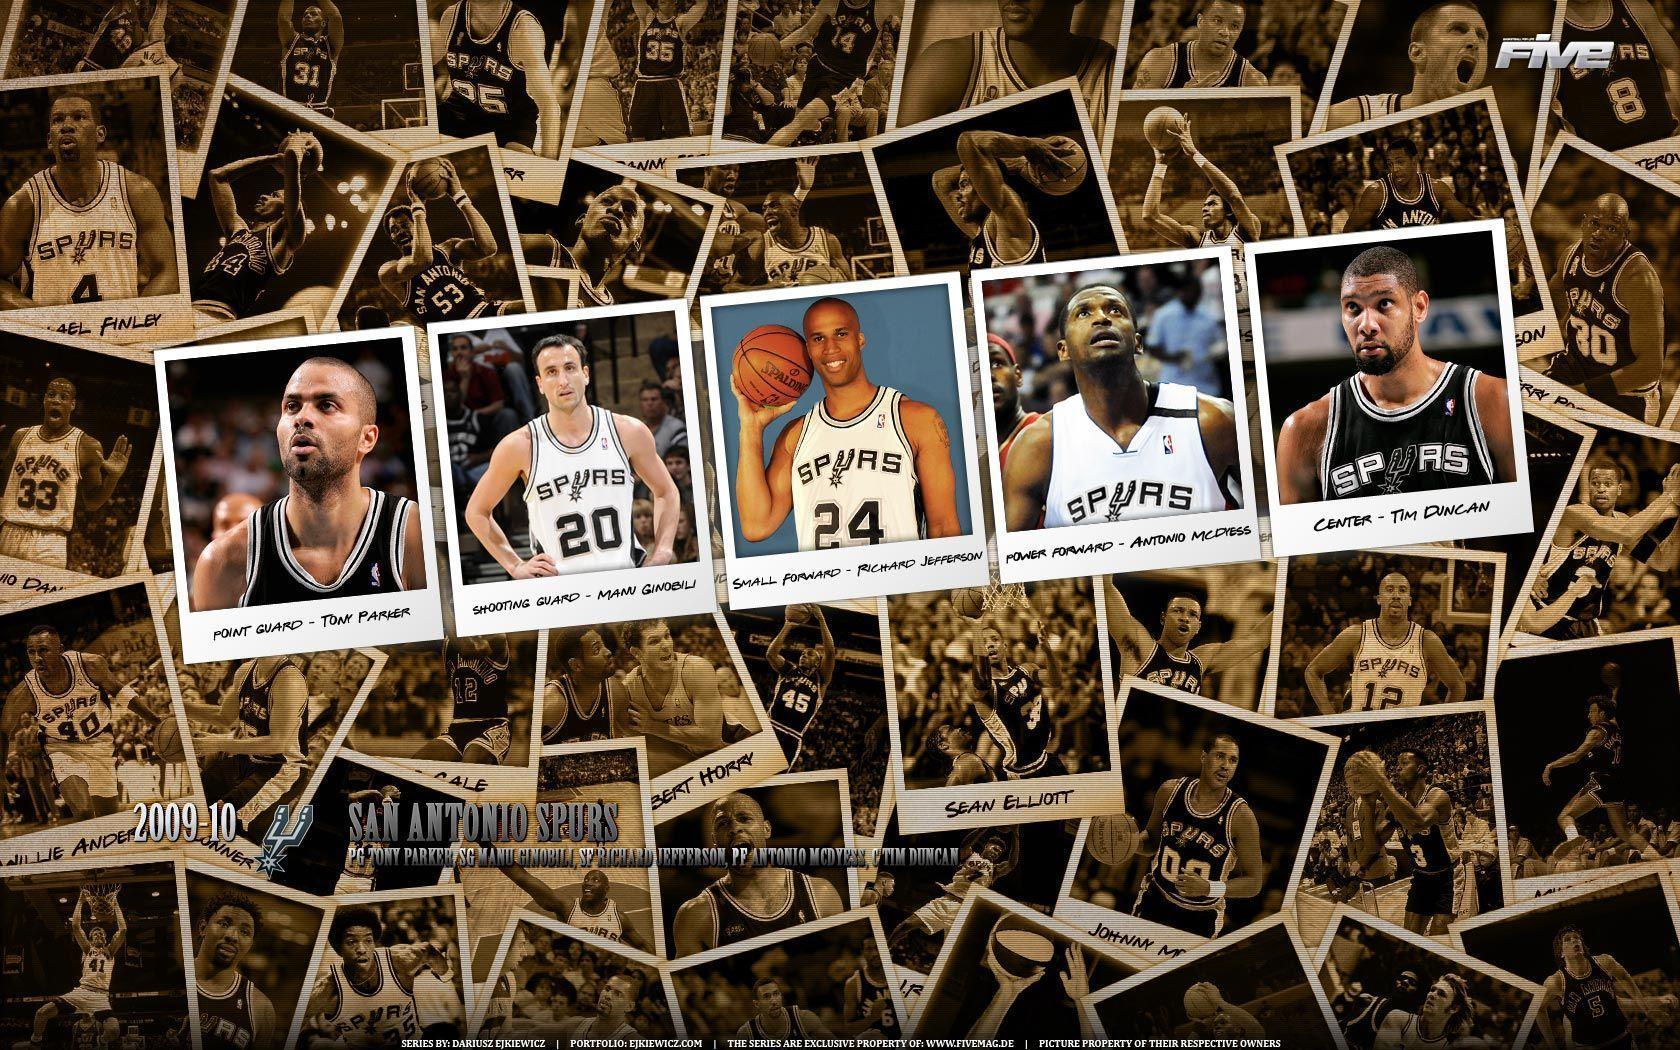 San Antonio Spurs Wallpapers | Basketball Wallpapers at ...